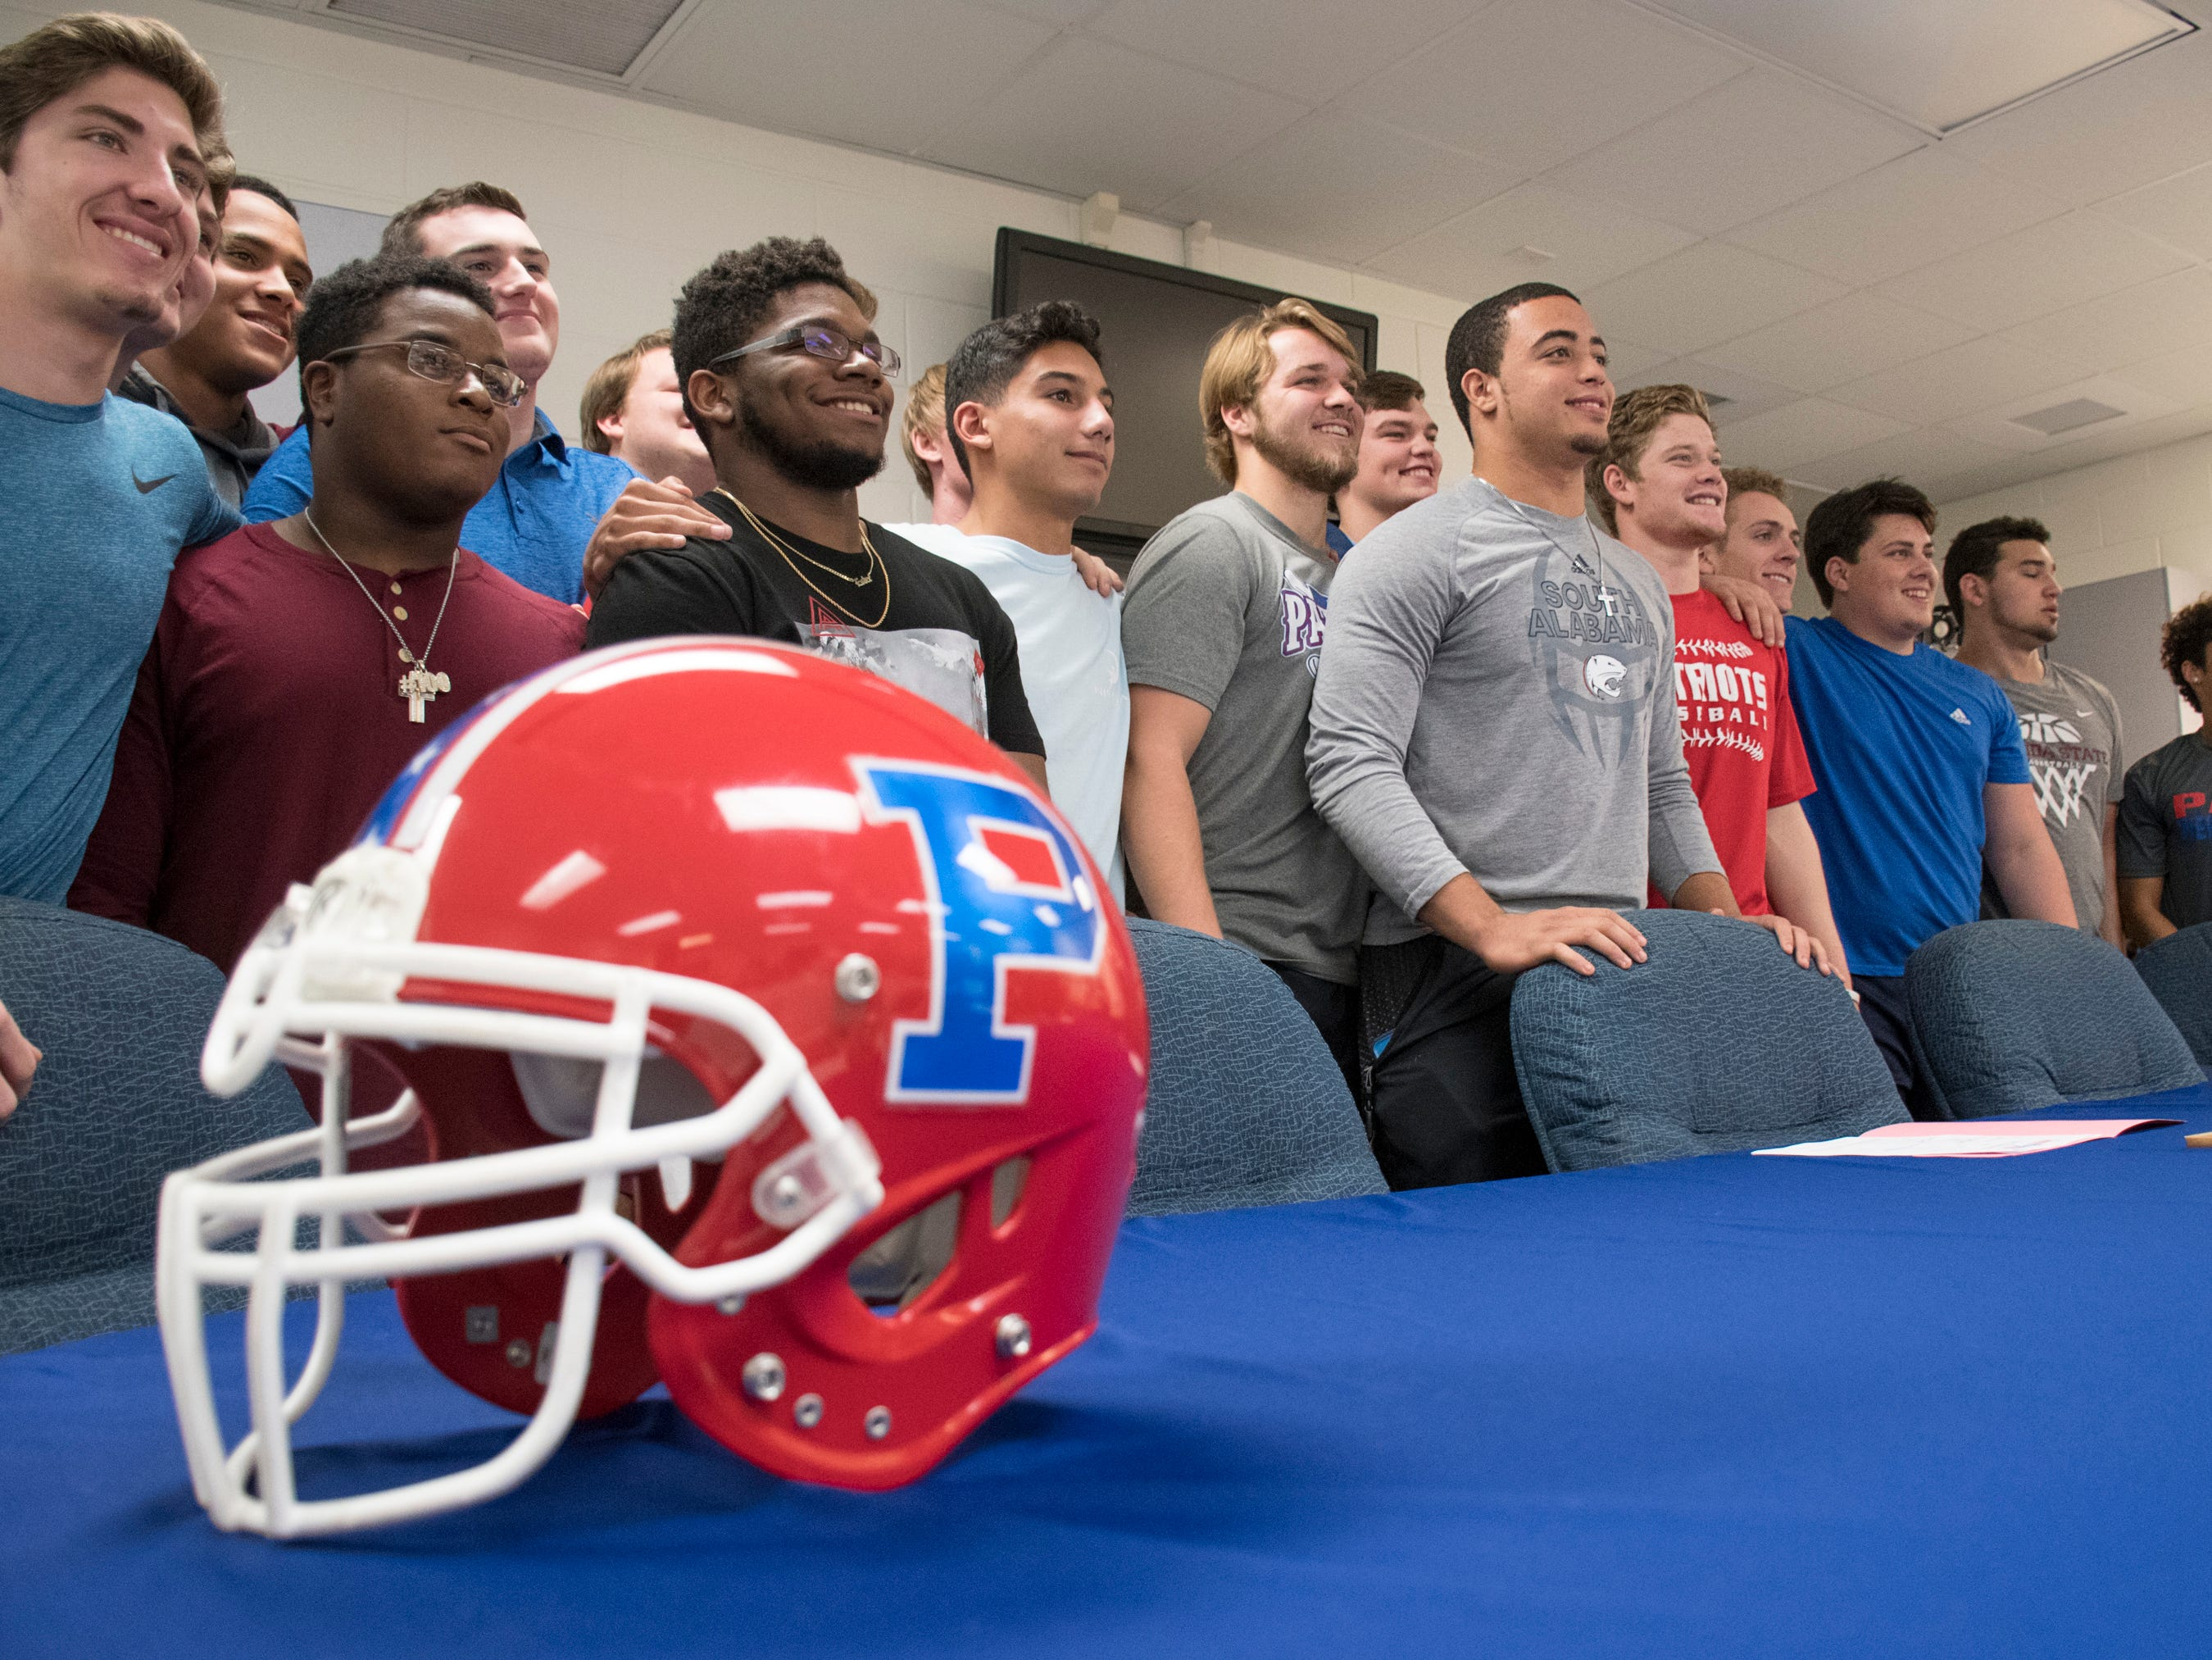 Damean Bivins, center, poses with his senior teammates after he signs his letter of commitment to play football at the University of South Alabama during a ceremony at Pace High School on Wednesday, February 6, 2019.